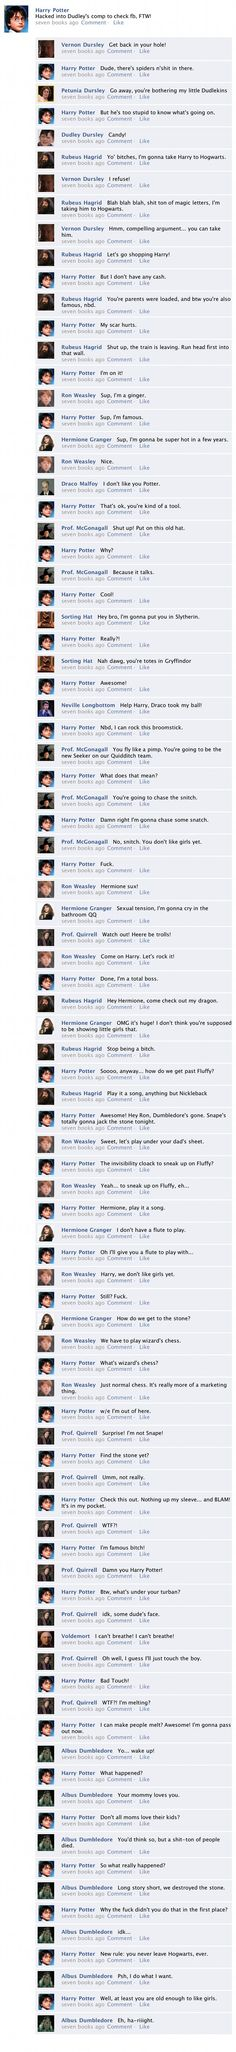 "The Entirety of ""Harry Potter and the Sorcerer's Stone"" in one Facebook Thread......worthy of some giggles :P"